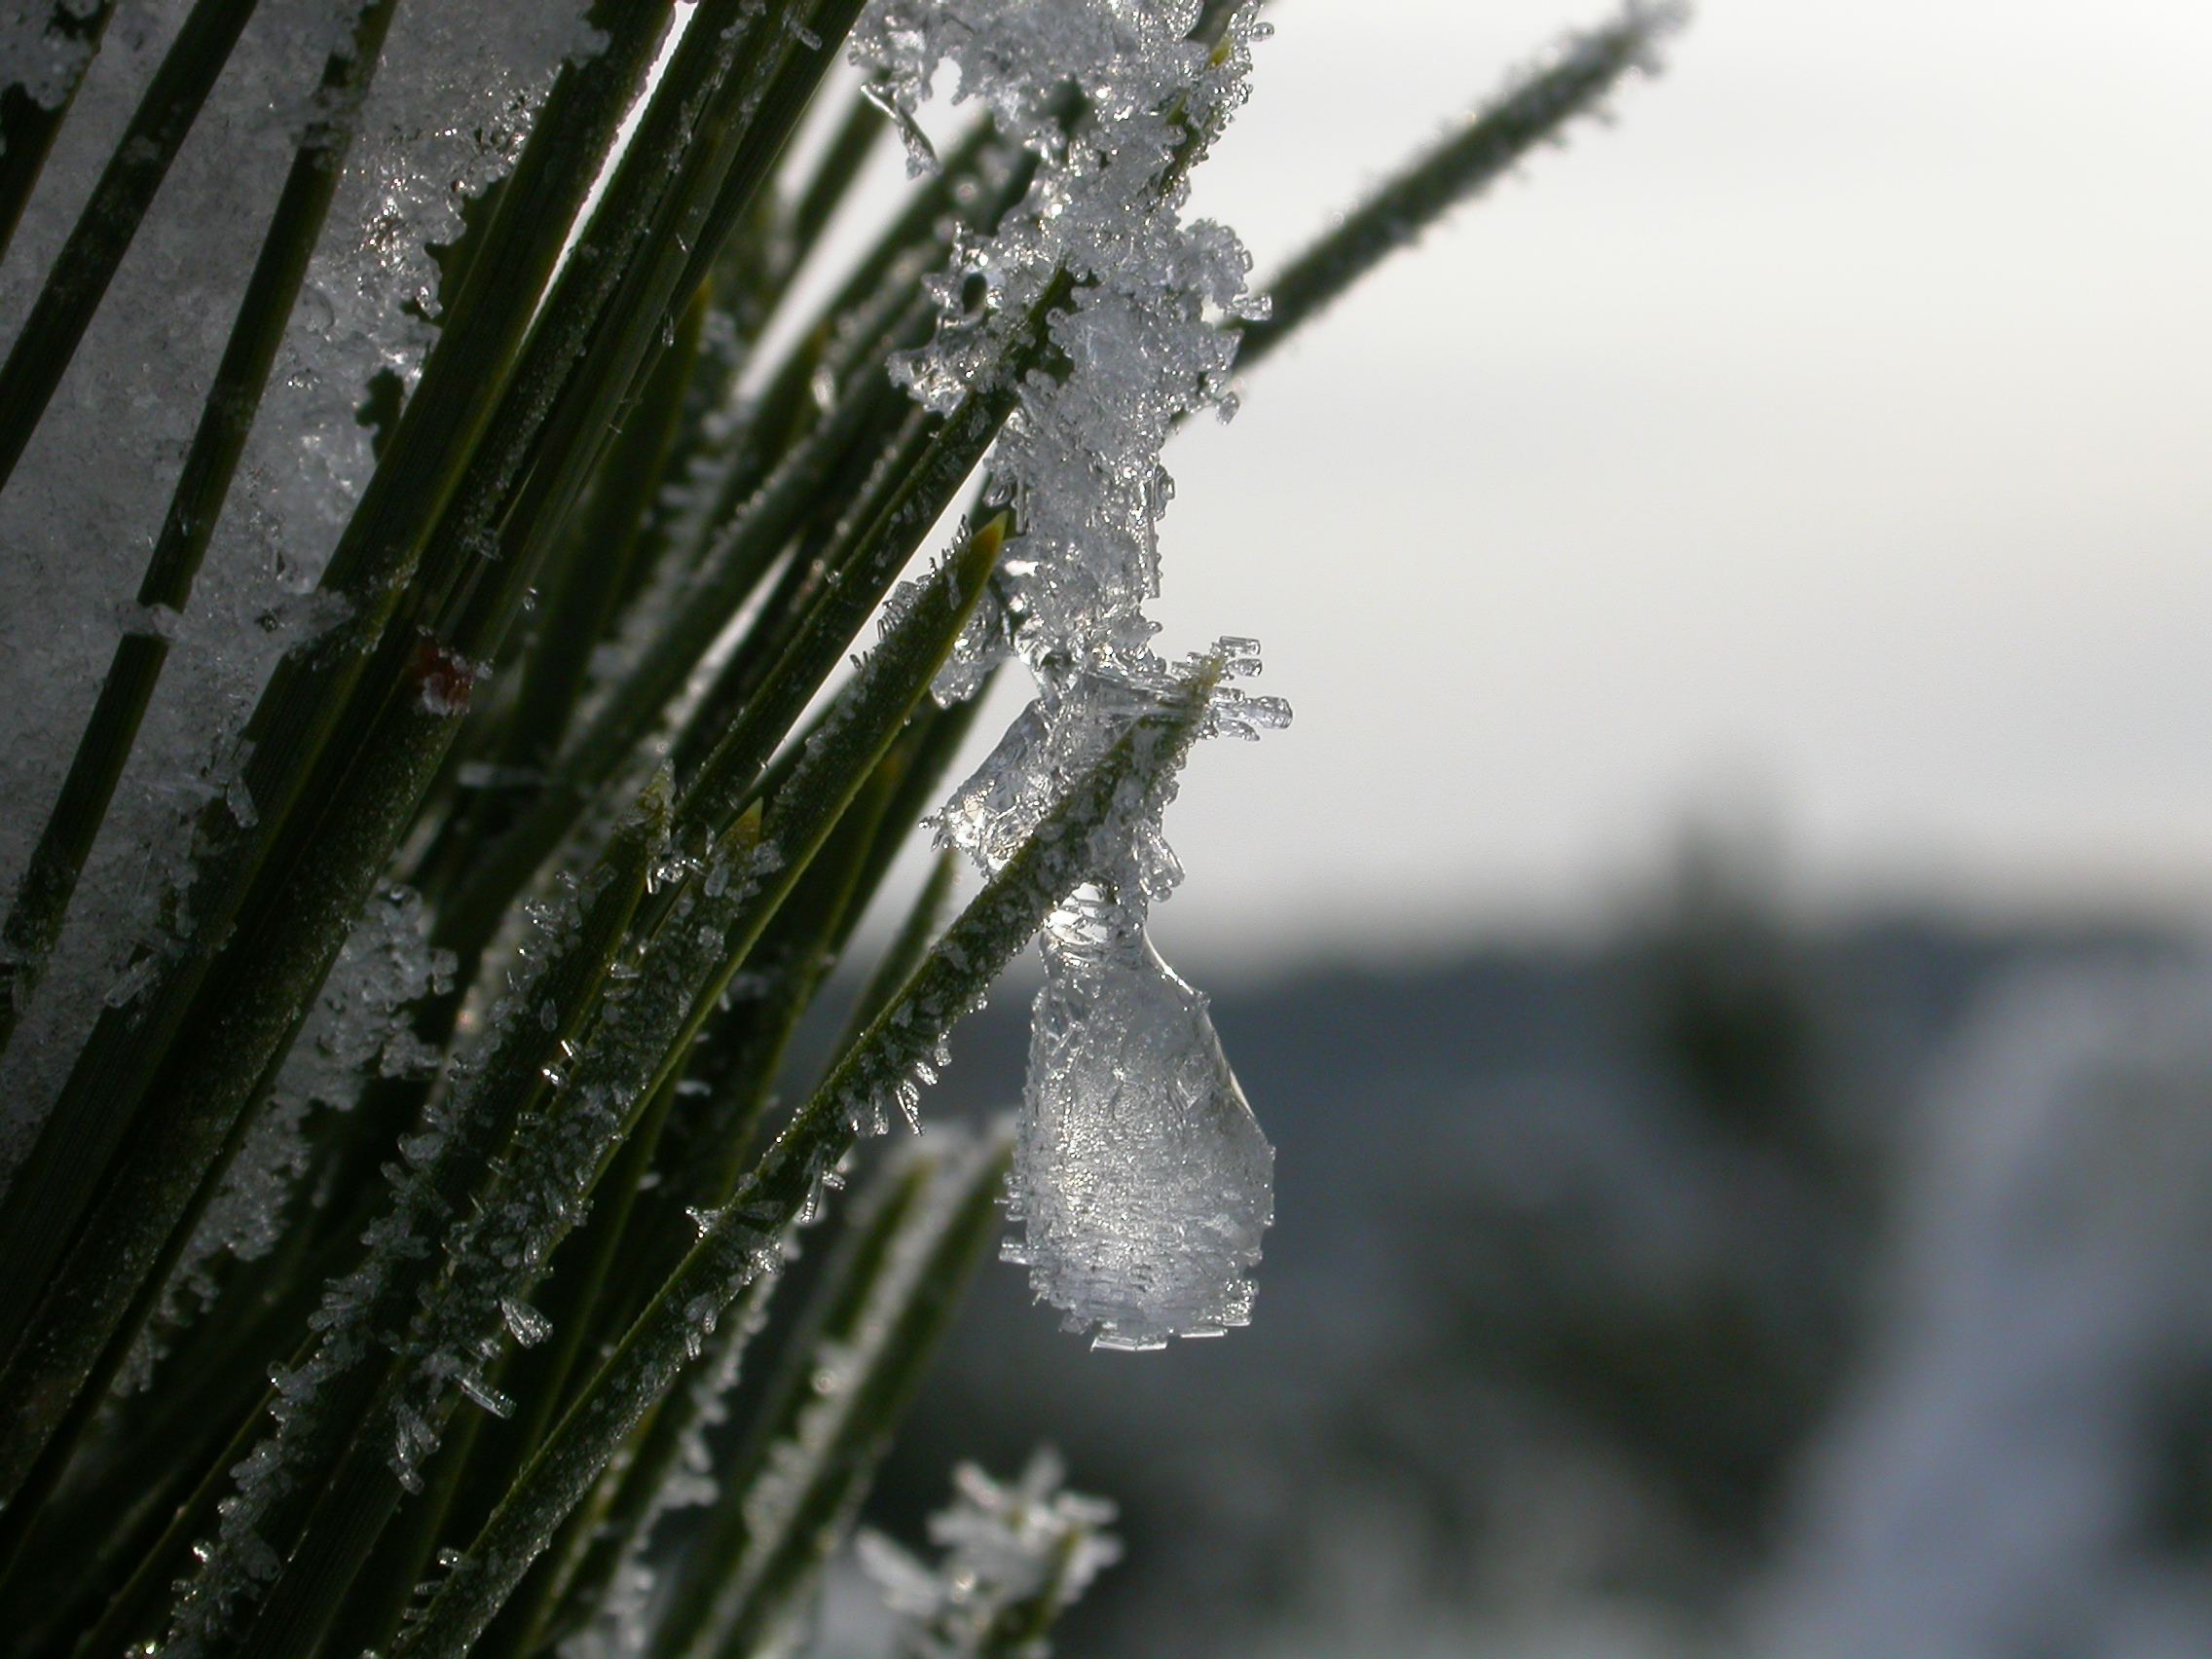 paul ice on fir needles needle cold Christmas winter frost